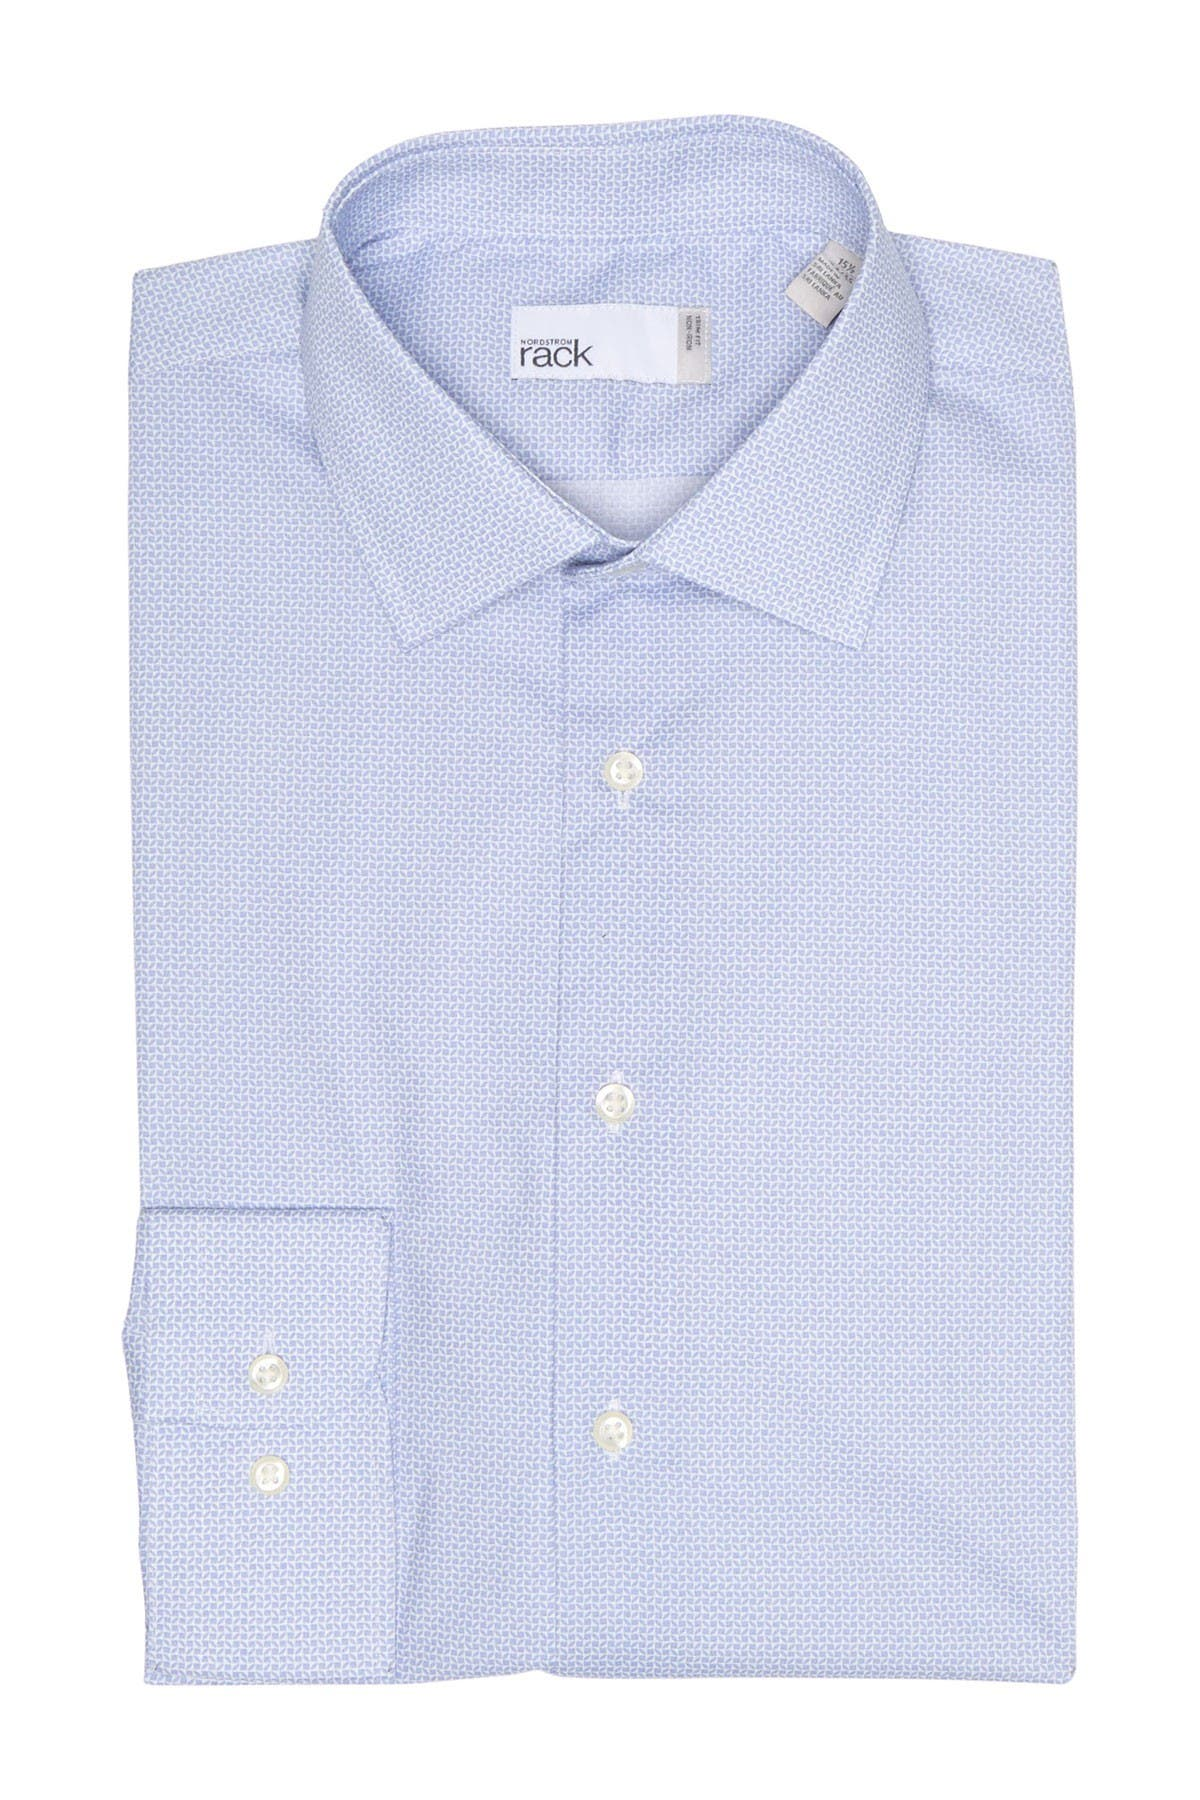 Image of Nordstrom Rack Geo Print Non-Iron Trim Fit Dress Shirt